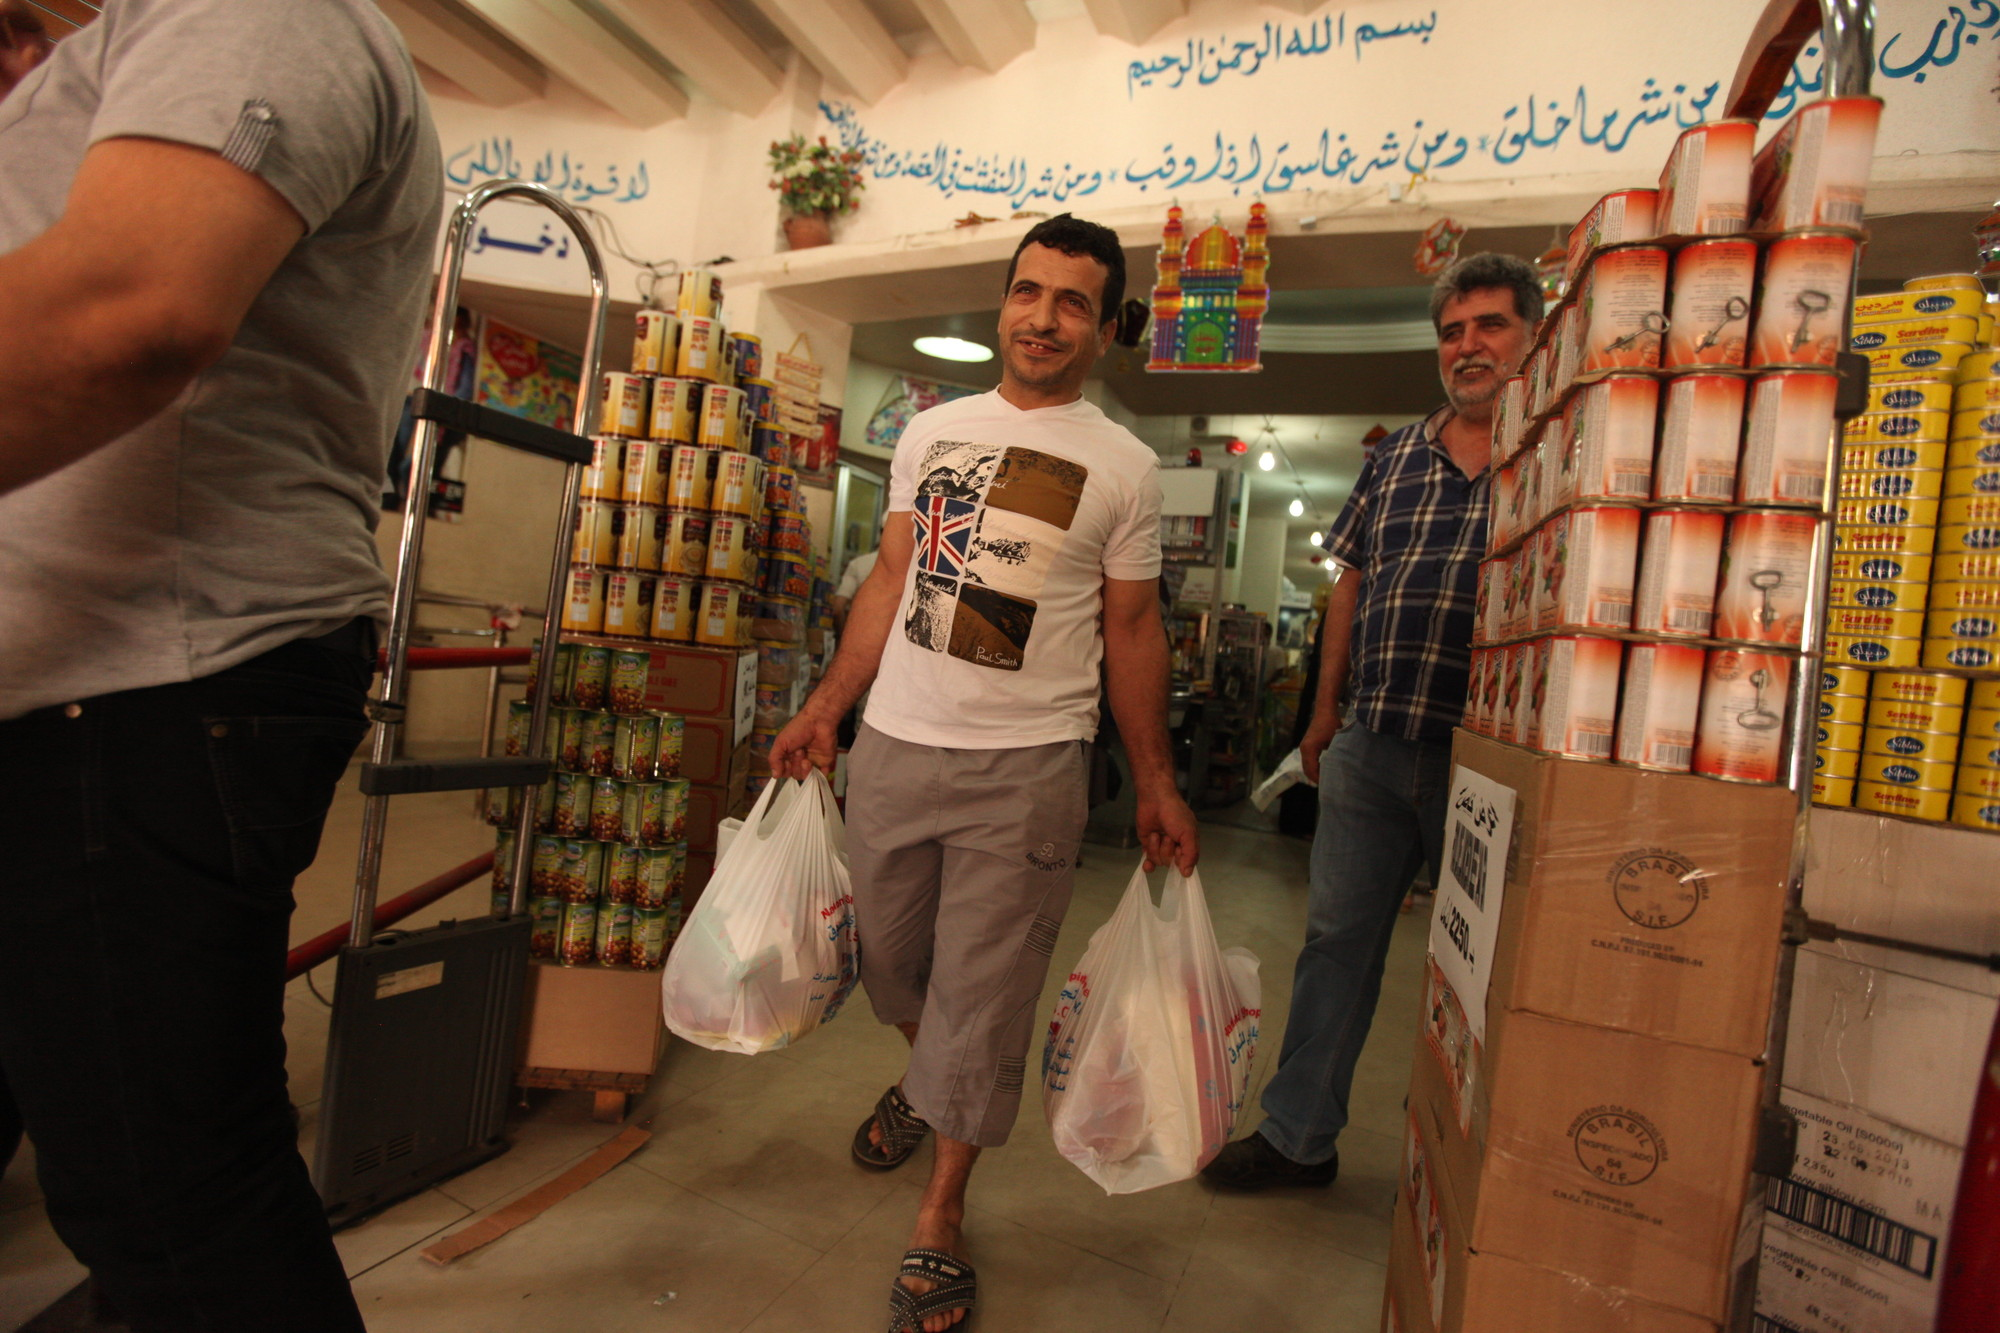 Syrian refugee uses vouchers to buy groceries